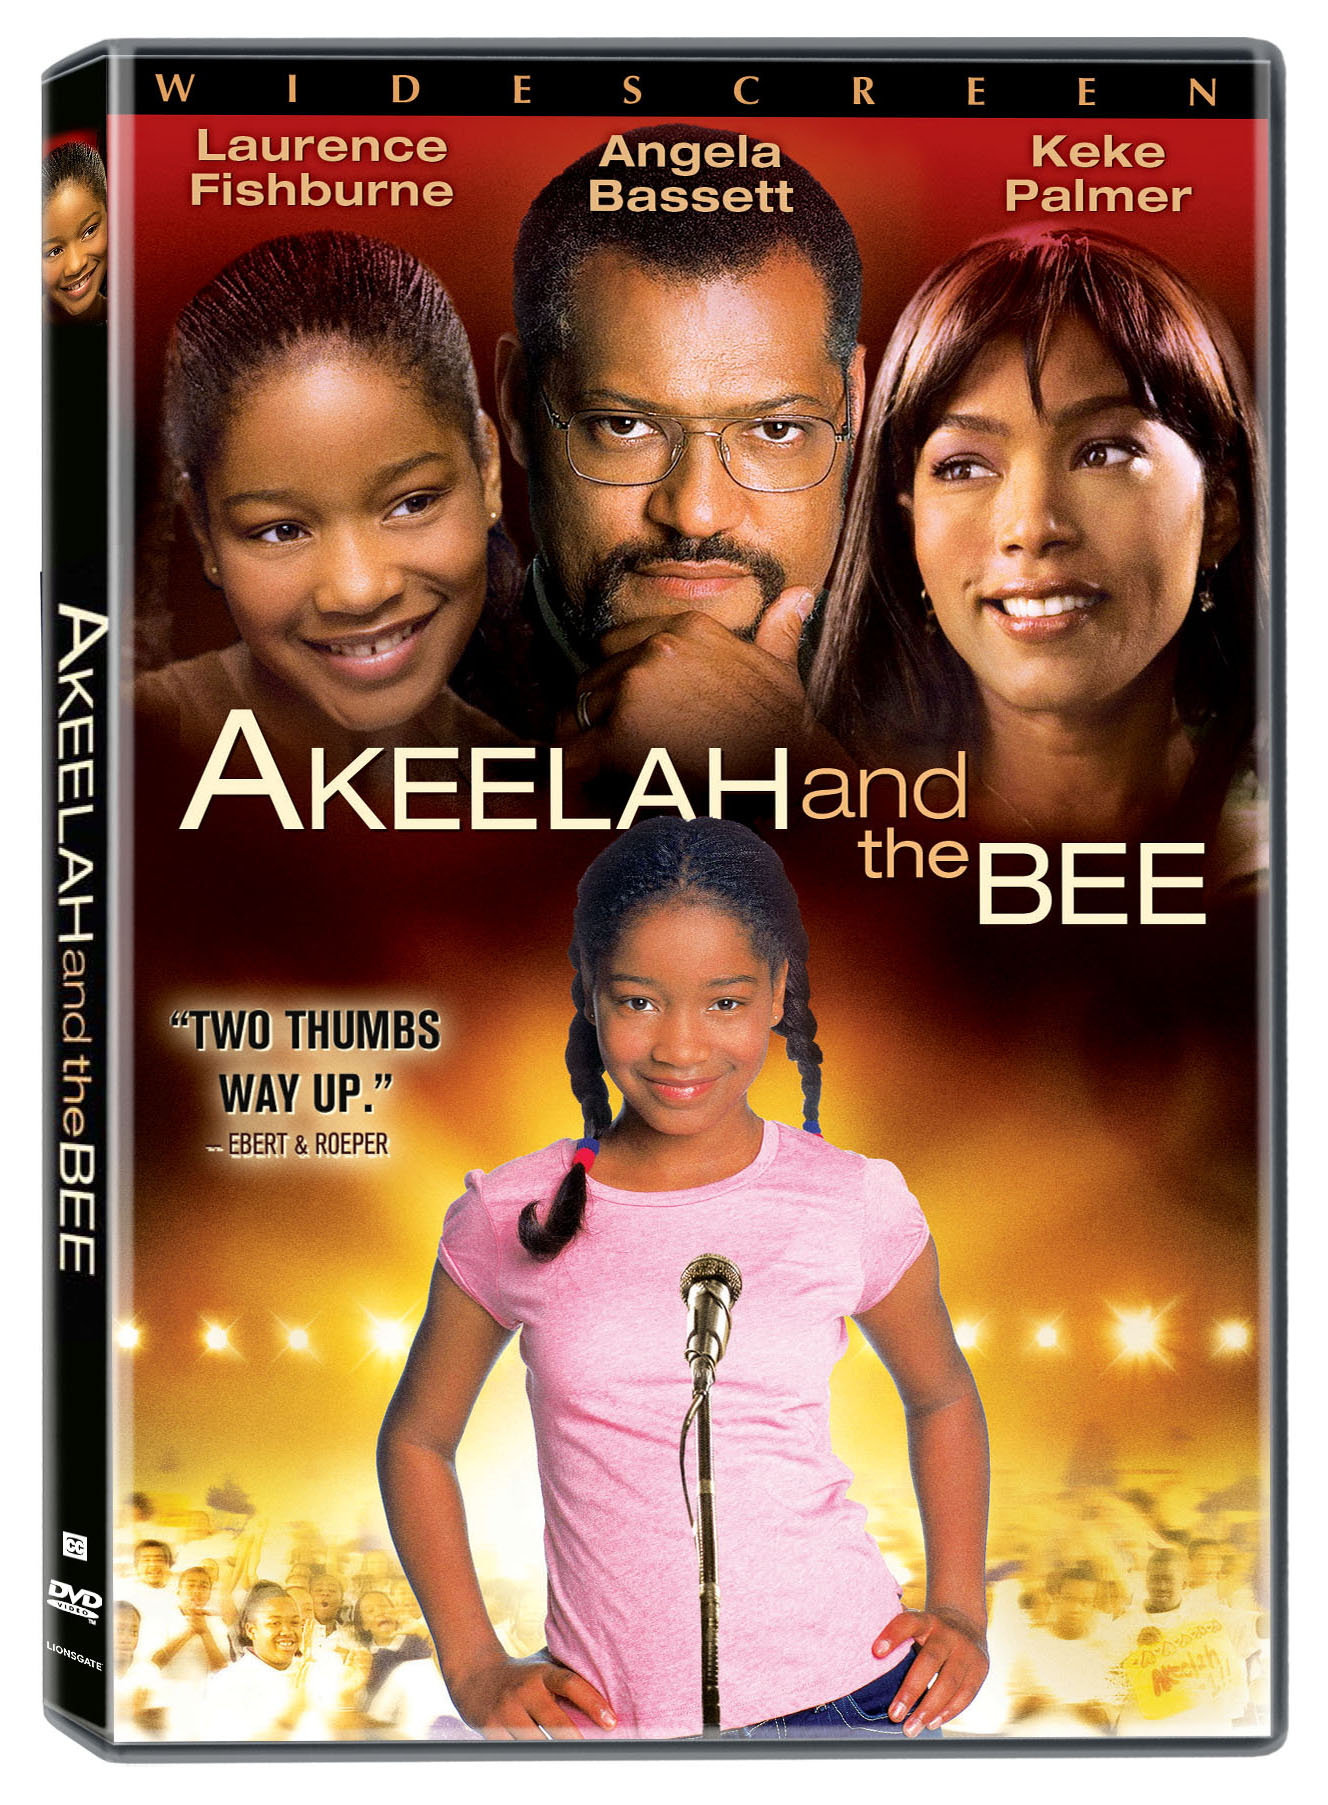 movie akeelah and the bee Akeelah and the bee is a superb family movie about a young girl from humble circumstances competing against much wealthier children in spelling bee championship most kids movies put sports on a pedestal, this movie is different as it makes kids feel enthusiastic about intellectual pursuits.